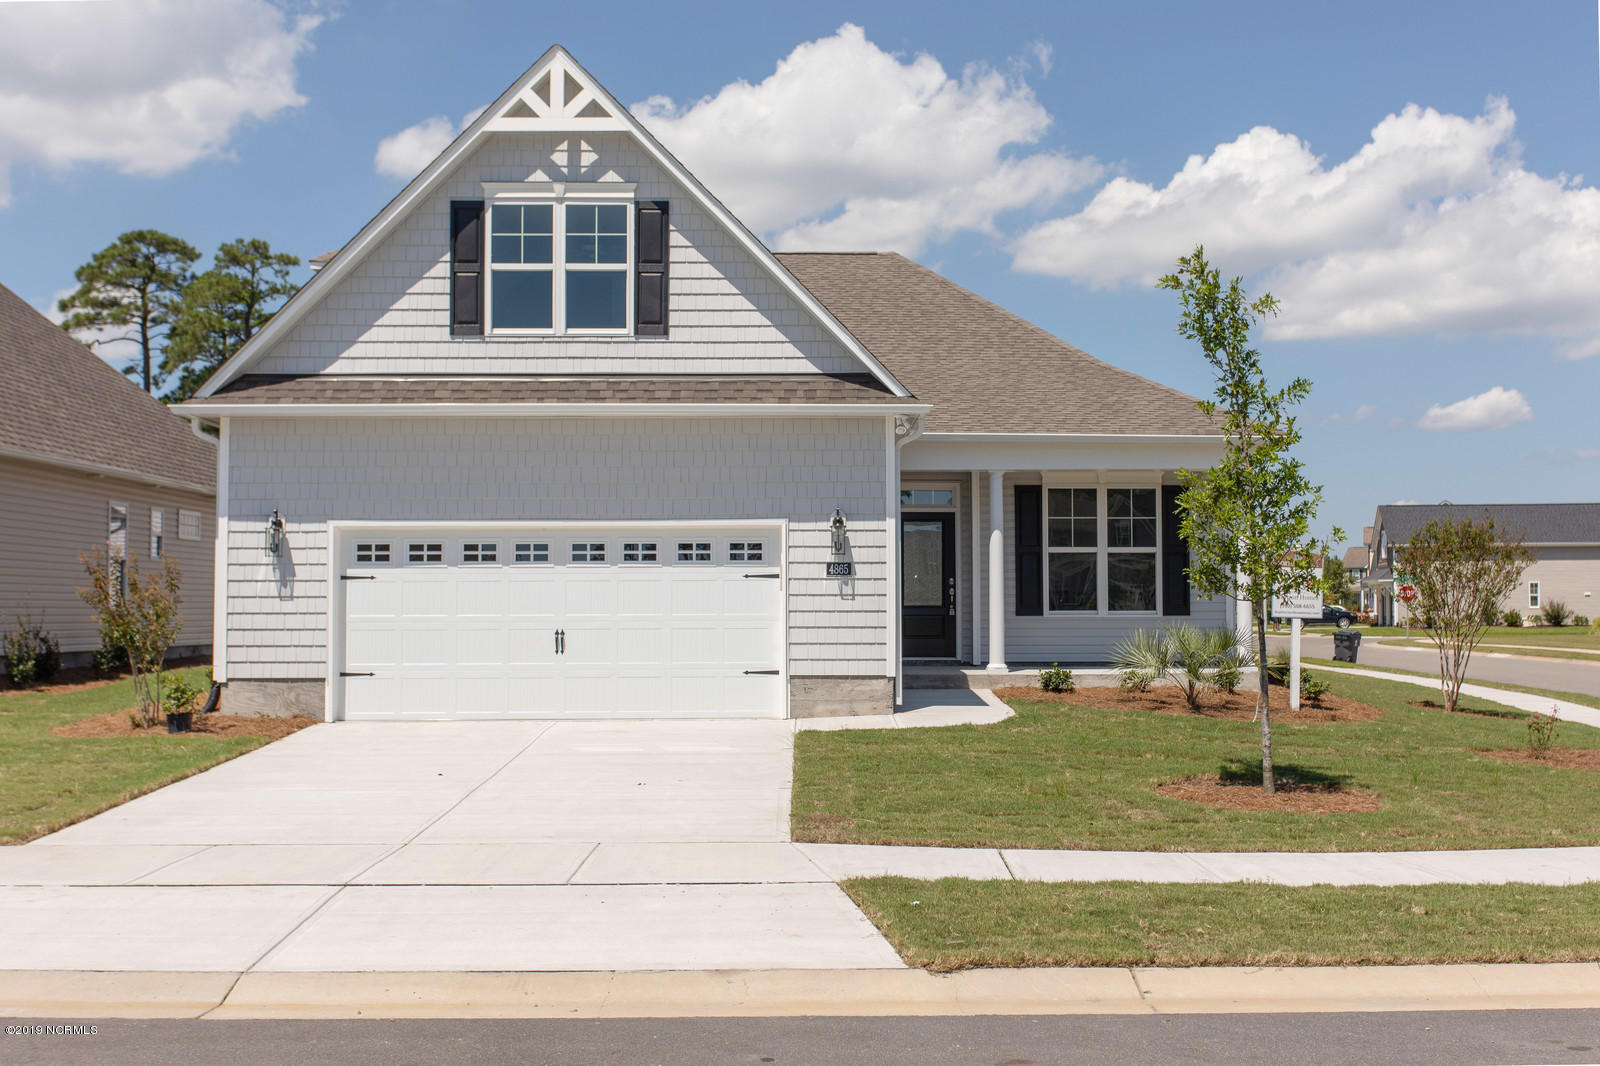 4865 Goodwood Way Wilmington, NC 28412